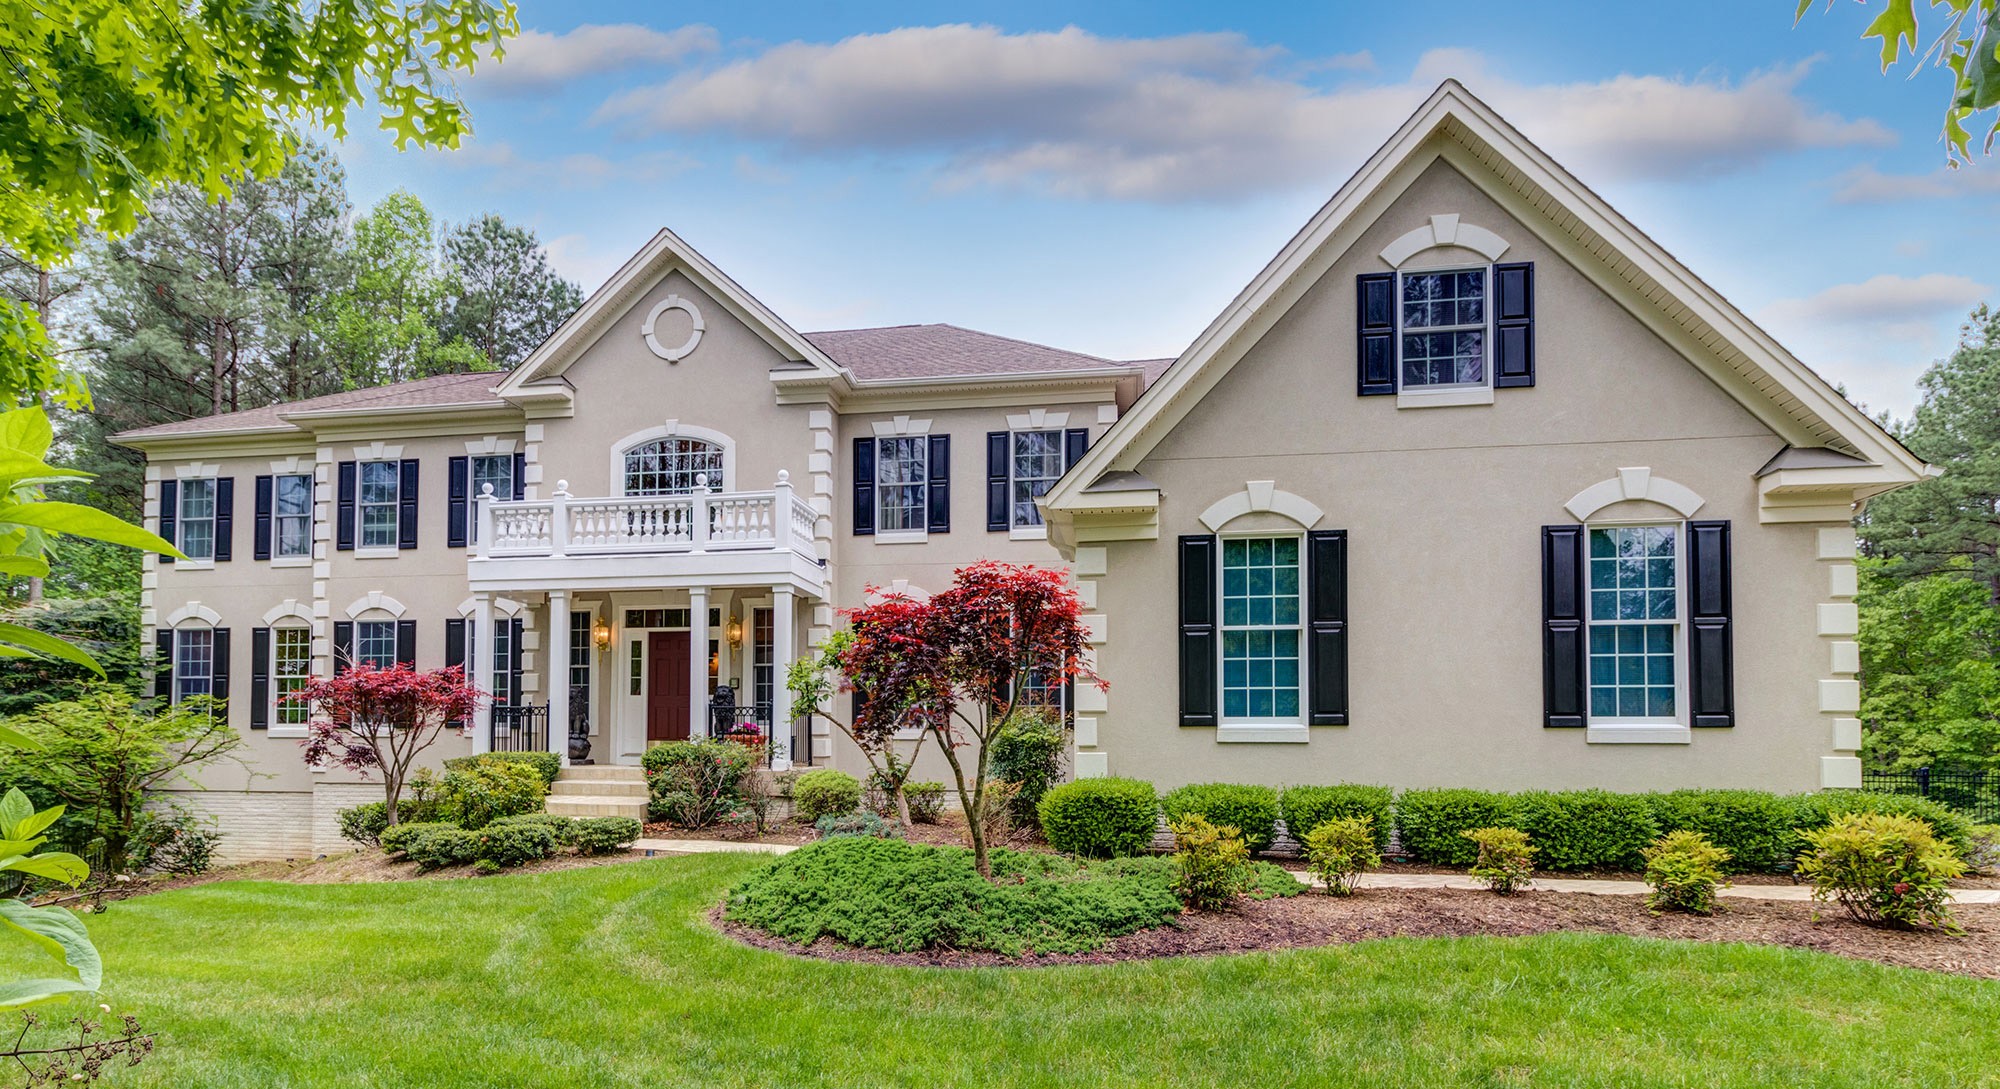 homes for sale in in Northern Virginia